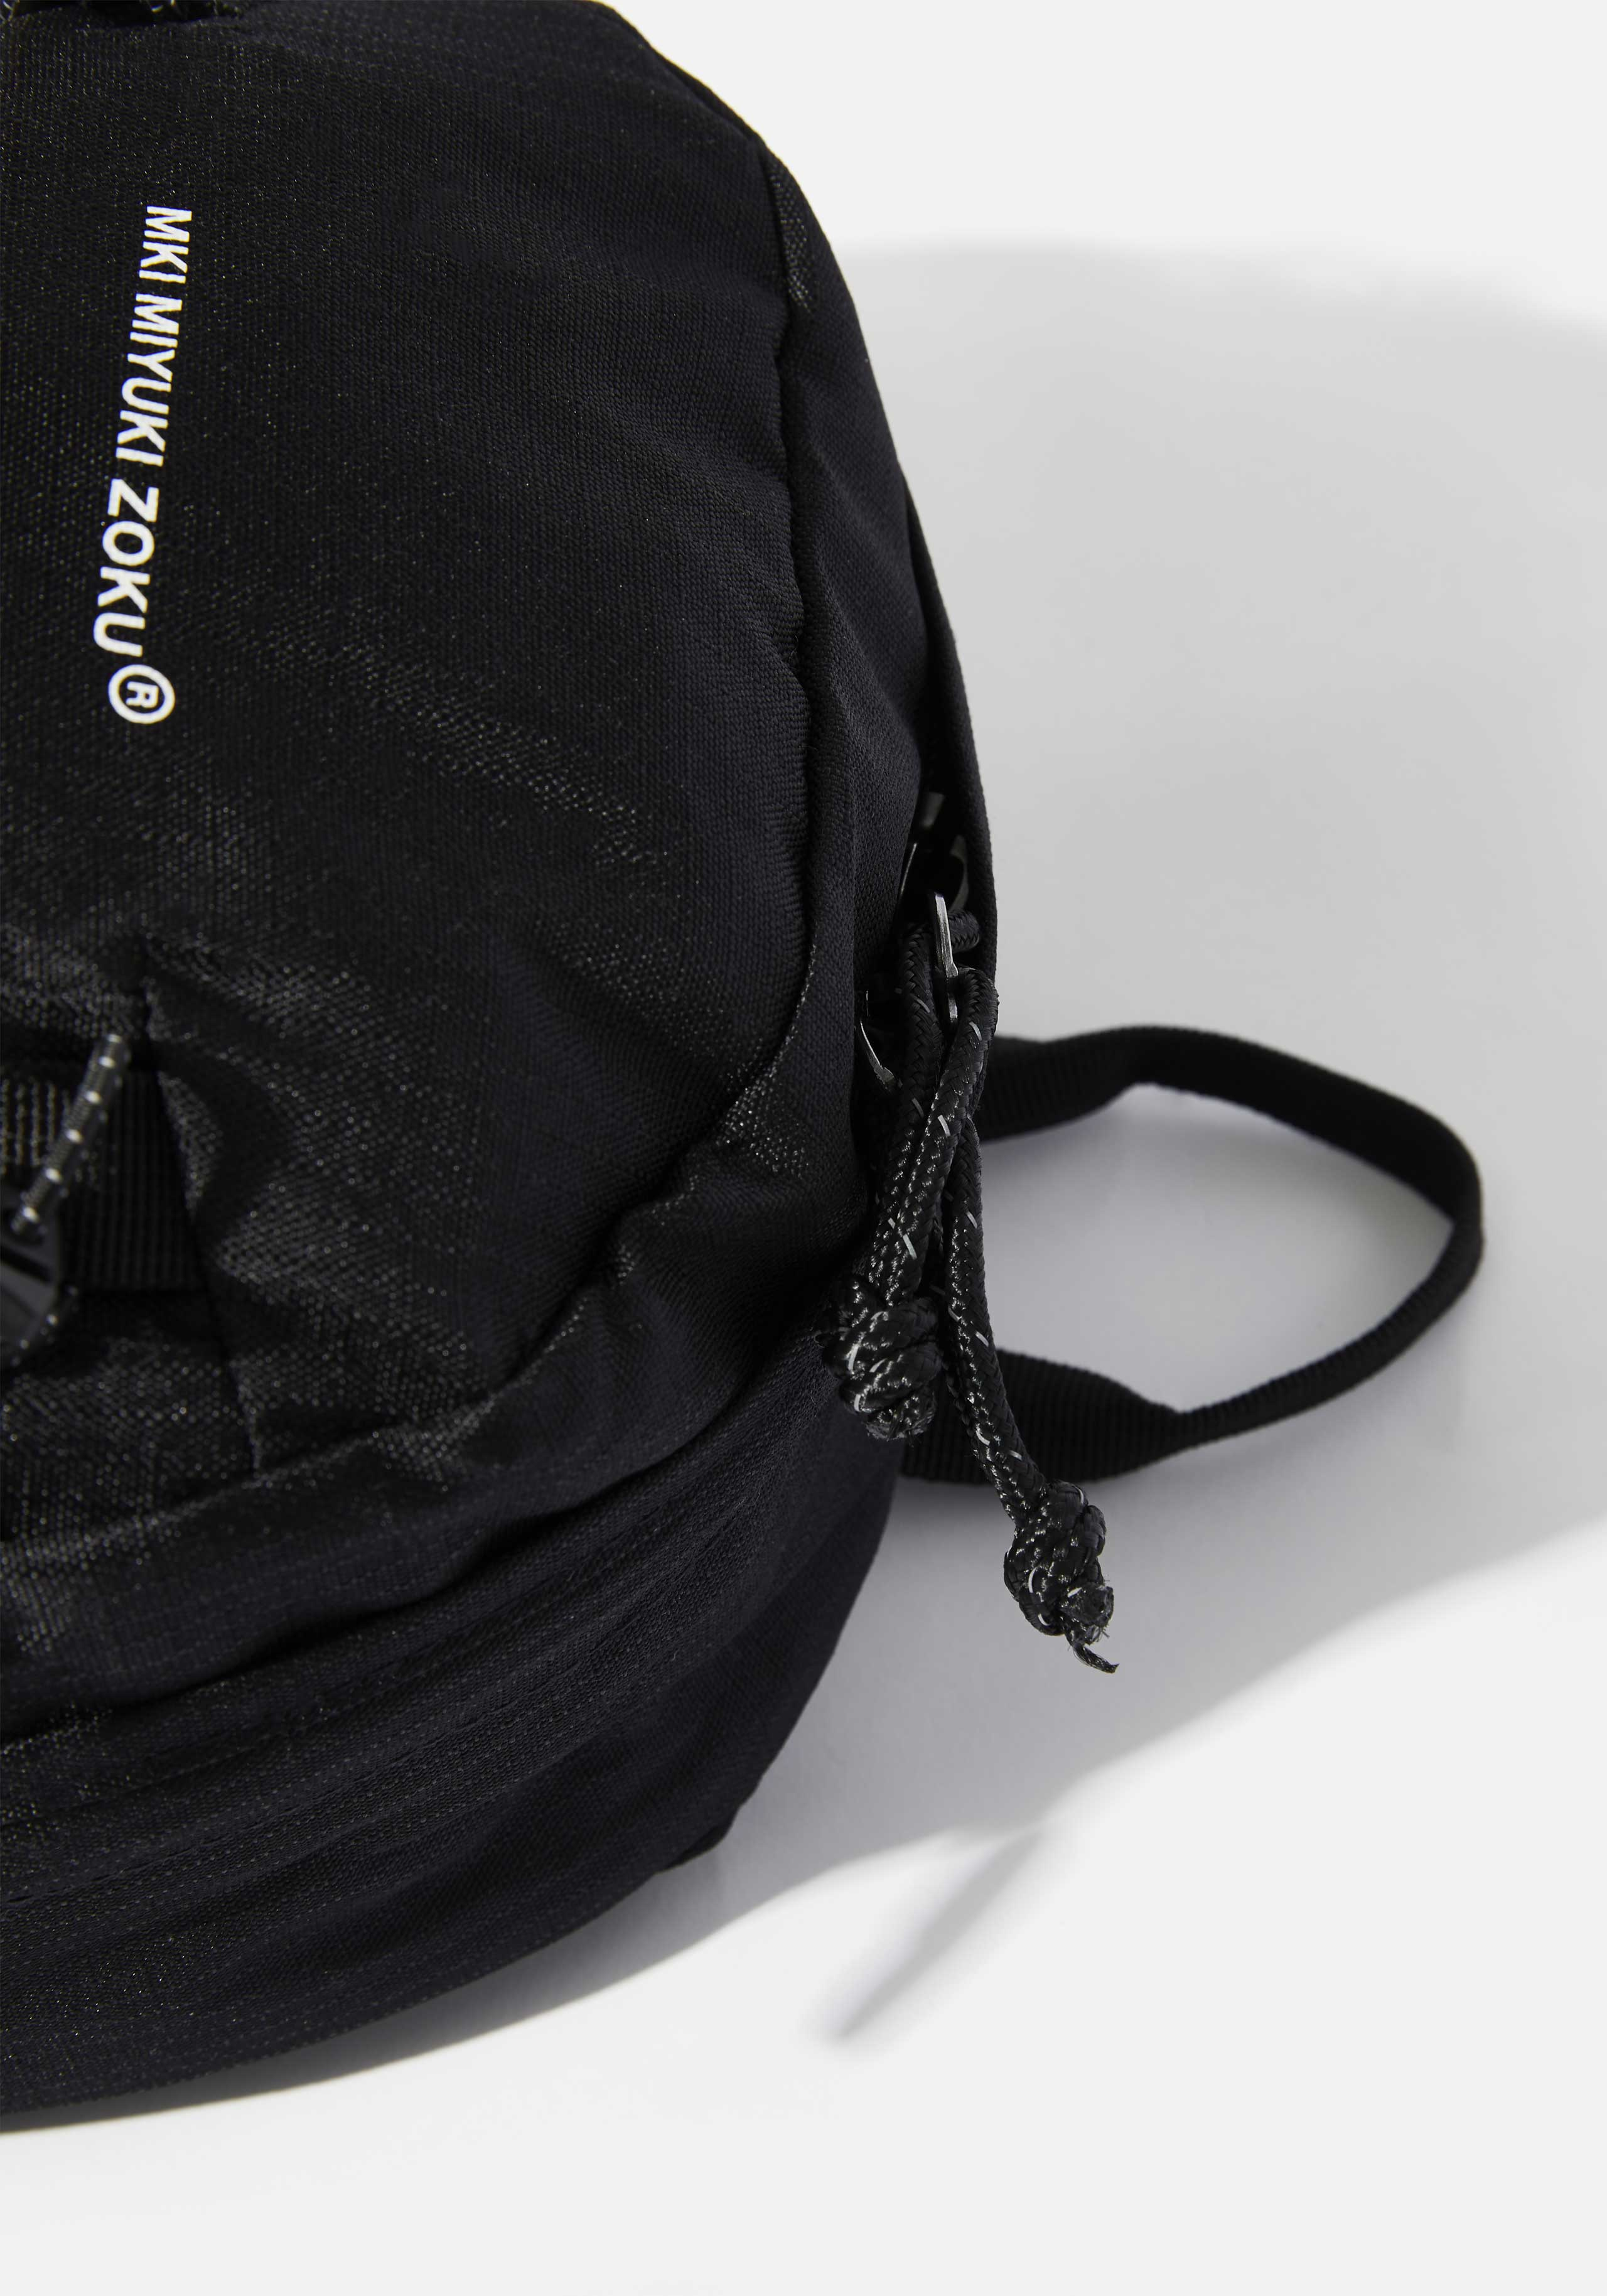 mki ripstop backpack 15l 7